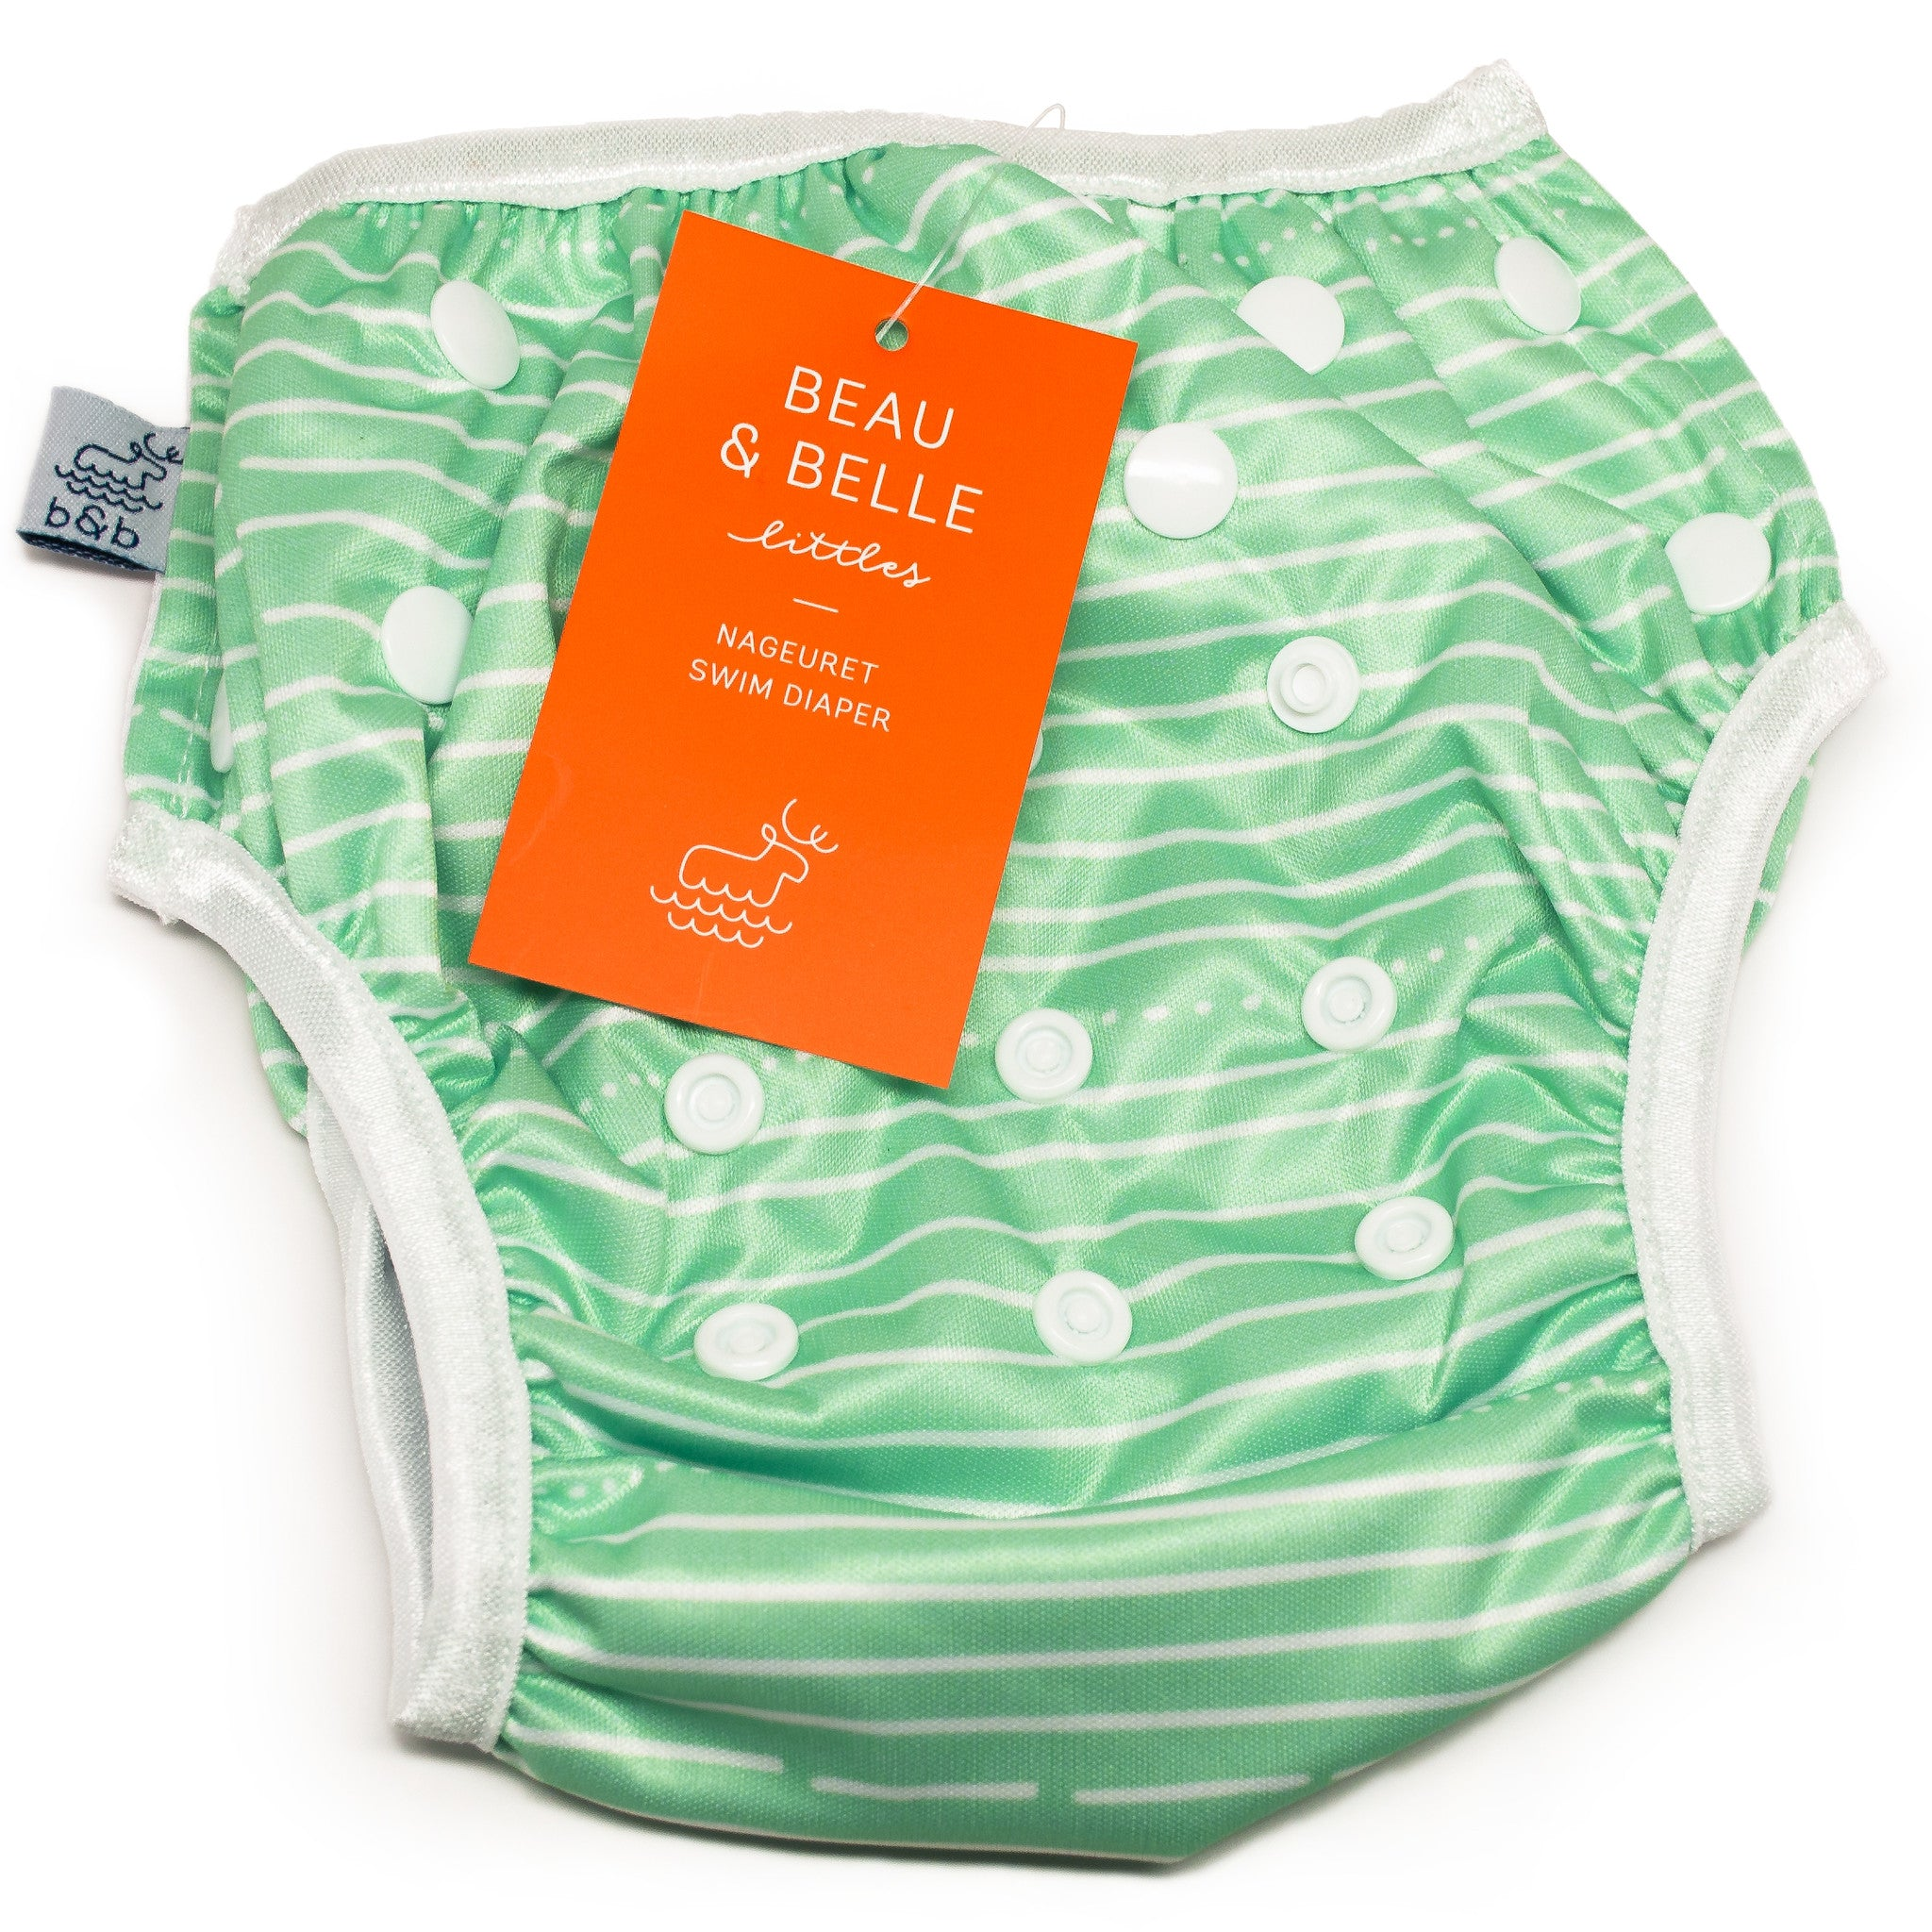 Beau and Belle Littles Swim Diaper, Regular Size, light green with white horizontal pin stripes, laid flat with tag showing